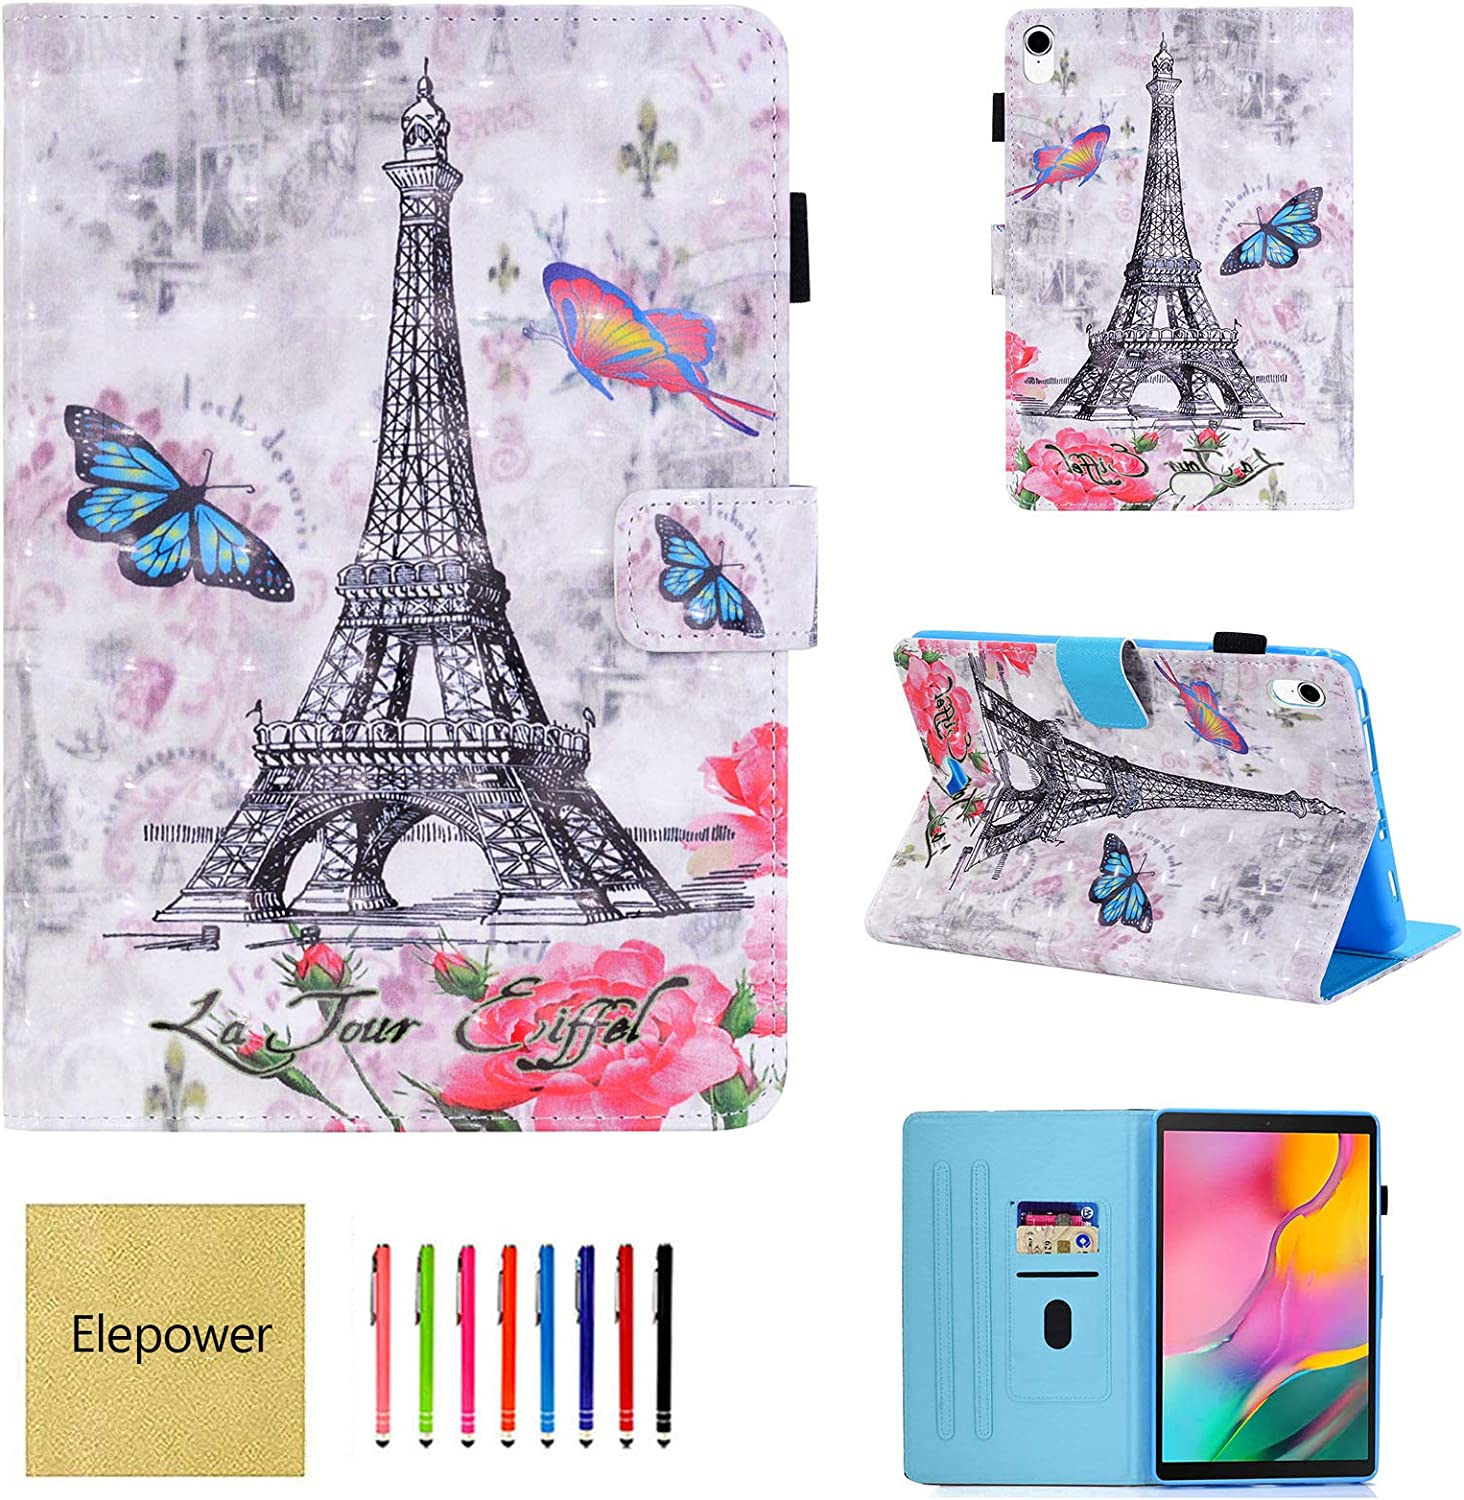 iPad Pro 11 Case, Elepower 3D Print Slim Fit PU Leather Folio Folding Kick Stand Protective Cover with Card Pencil Holder Strong Magnetic Closure for Apple iPad Pro 11-inch 2018 Release, Eiffel Tower